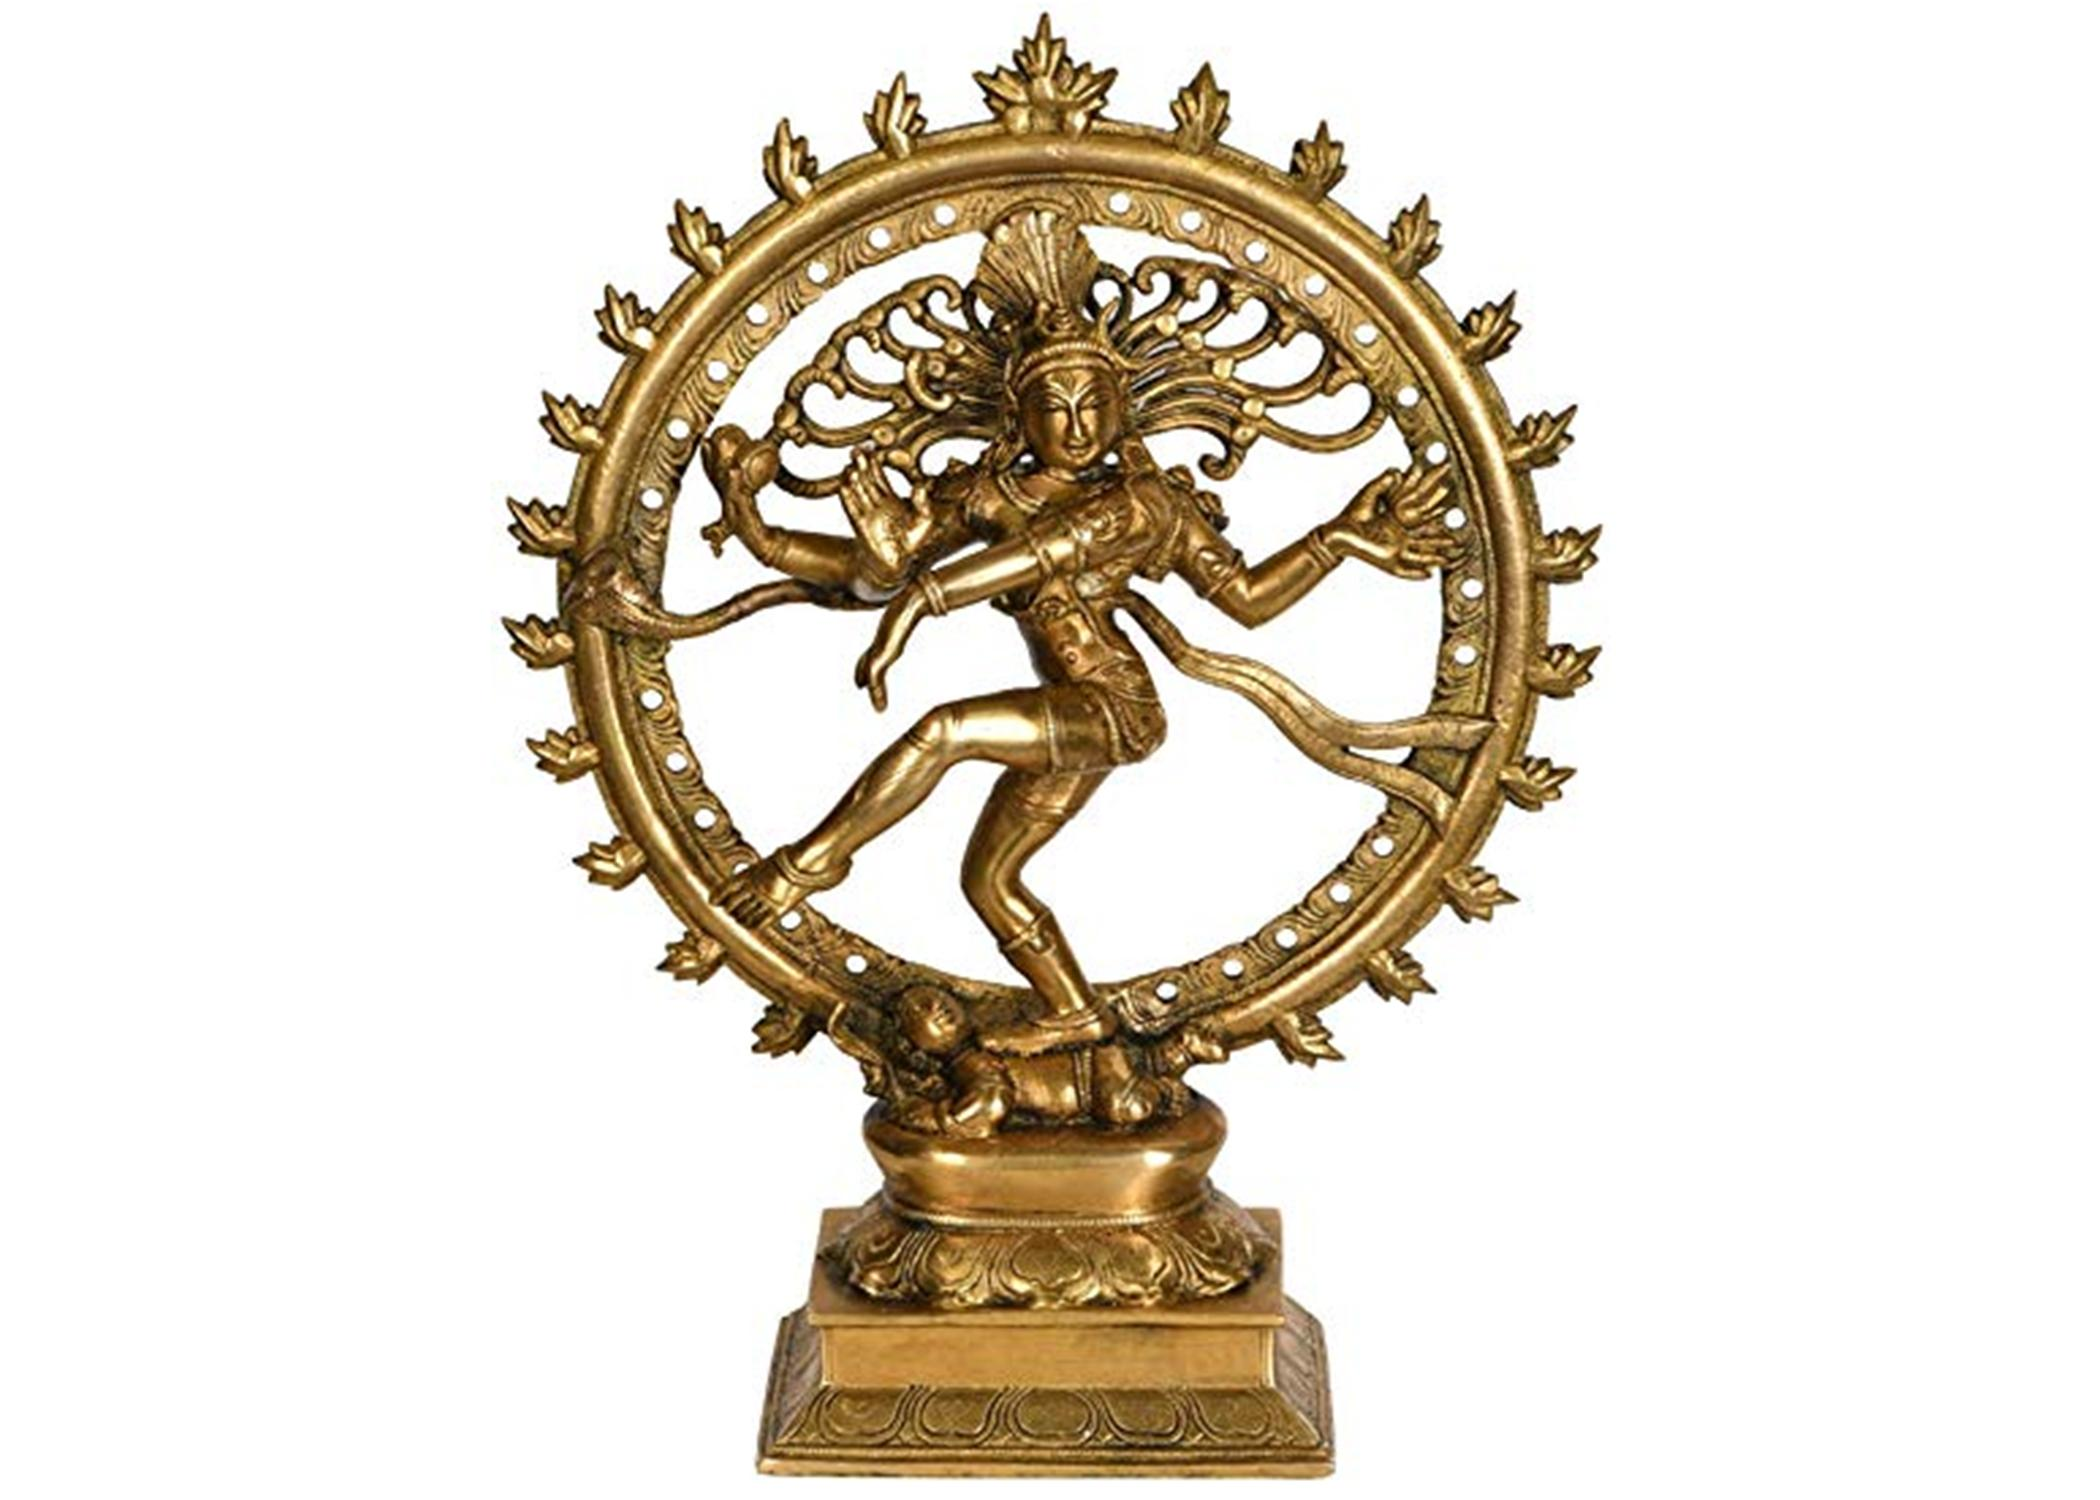 Nataraj is the Cosmic Dancer of Bliss, Creation, and Rejuvenation